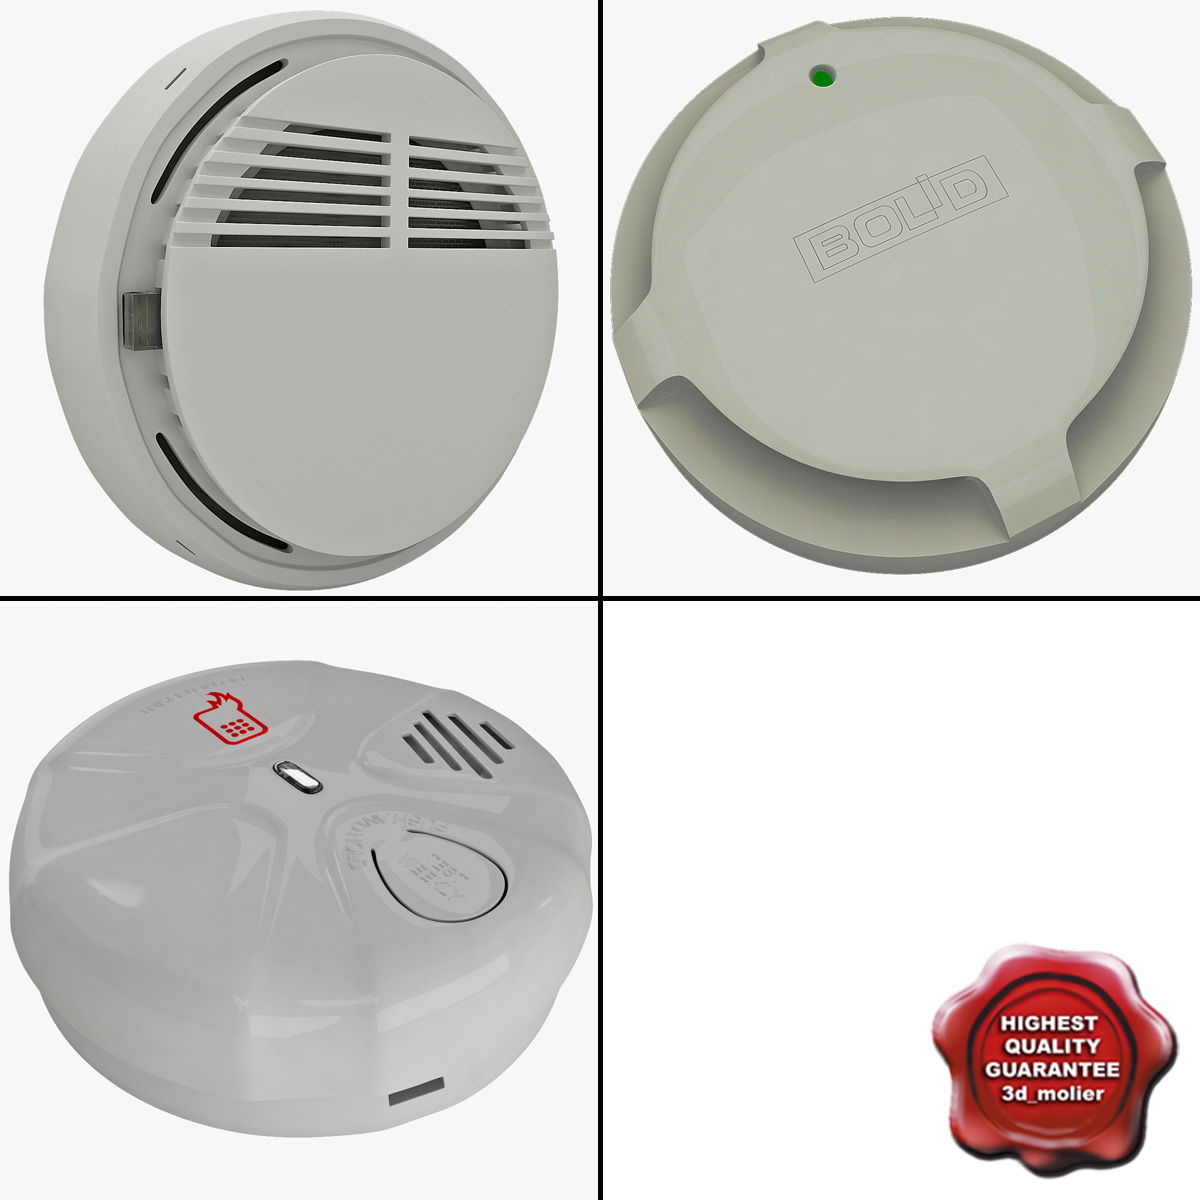 Smoke_Detectors_Collection_000.jpg